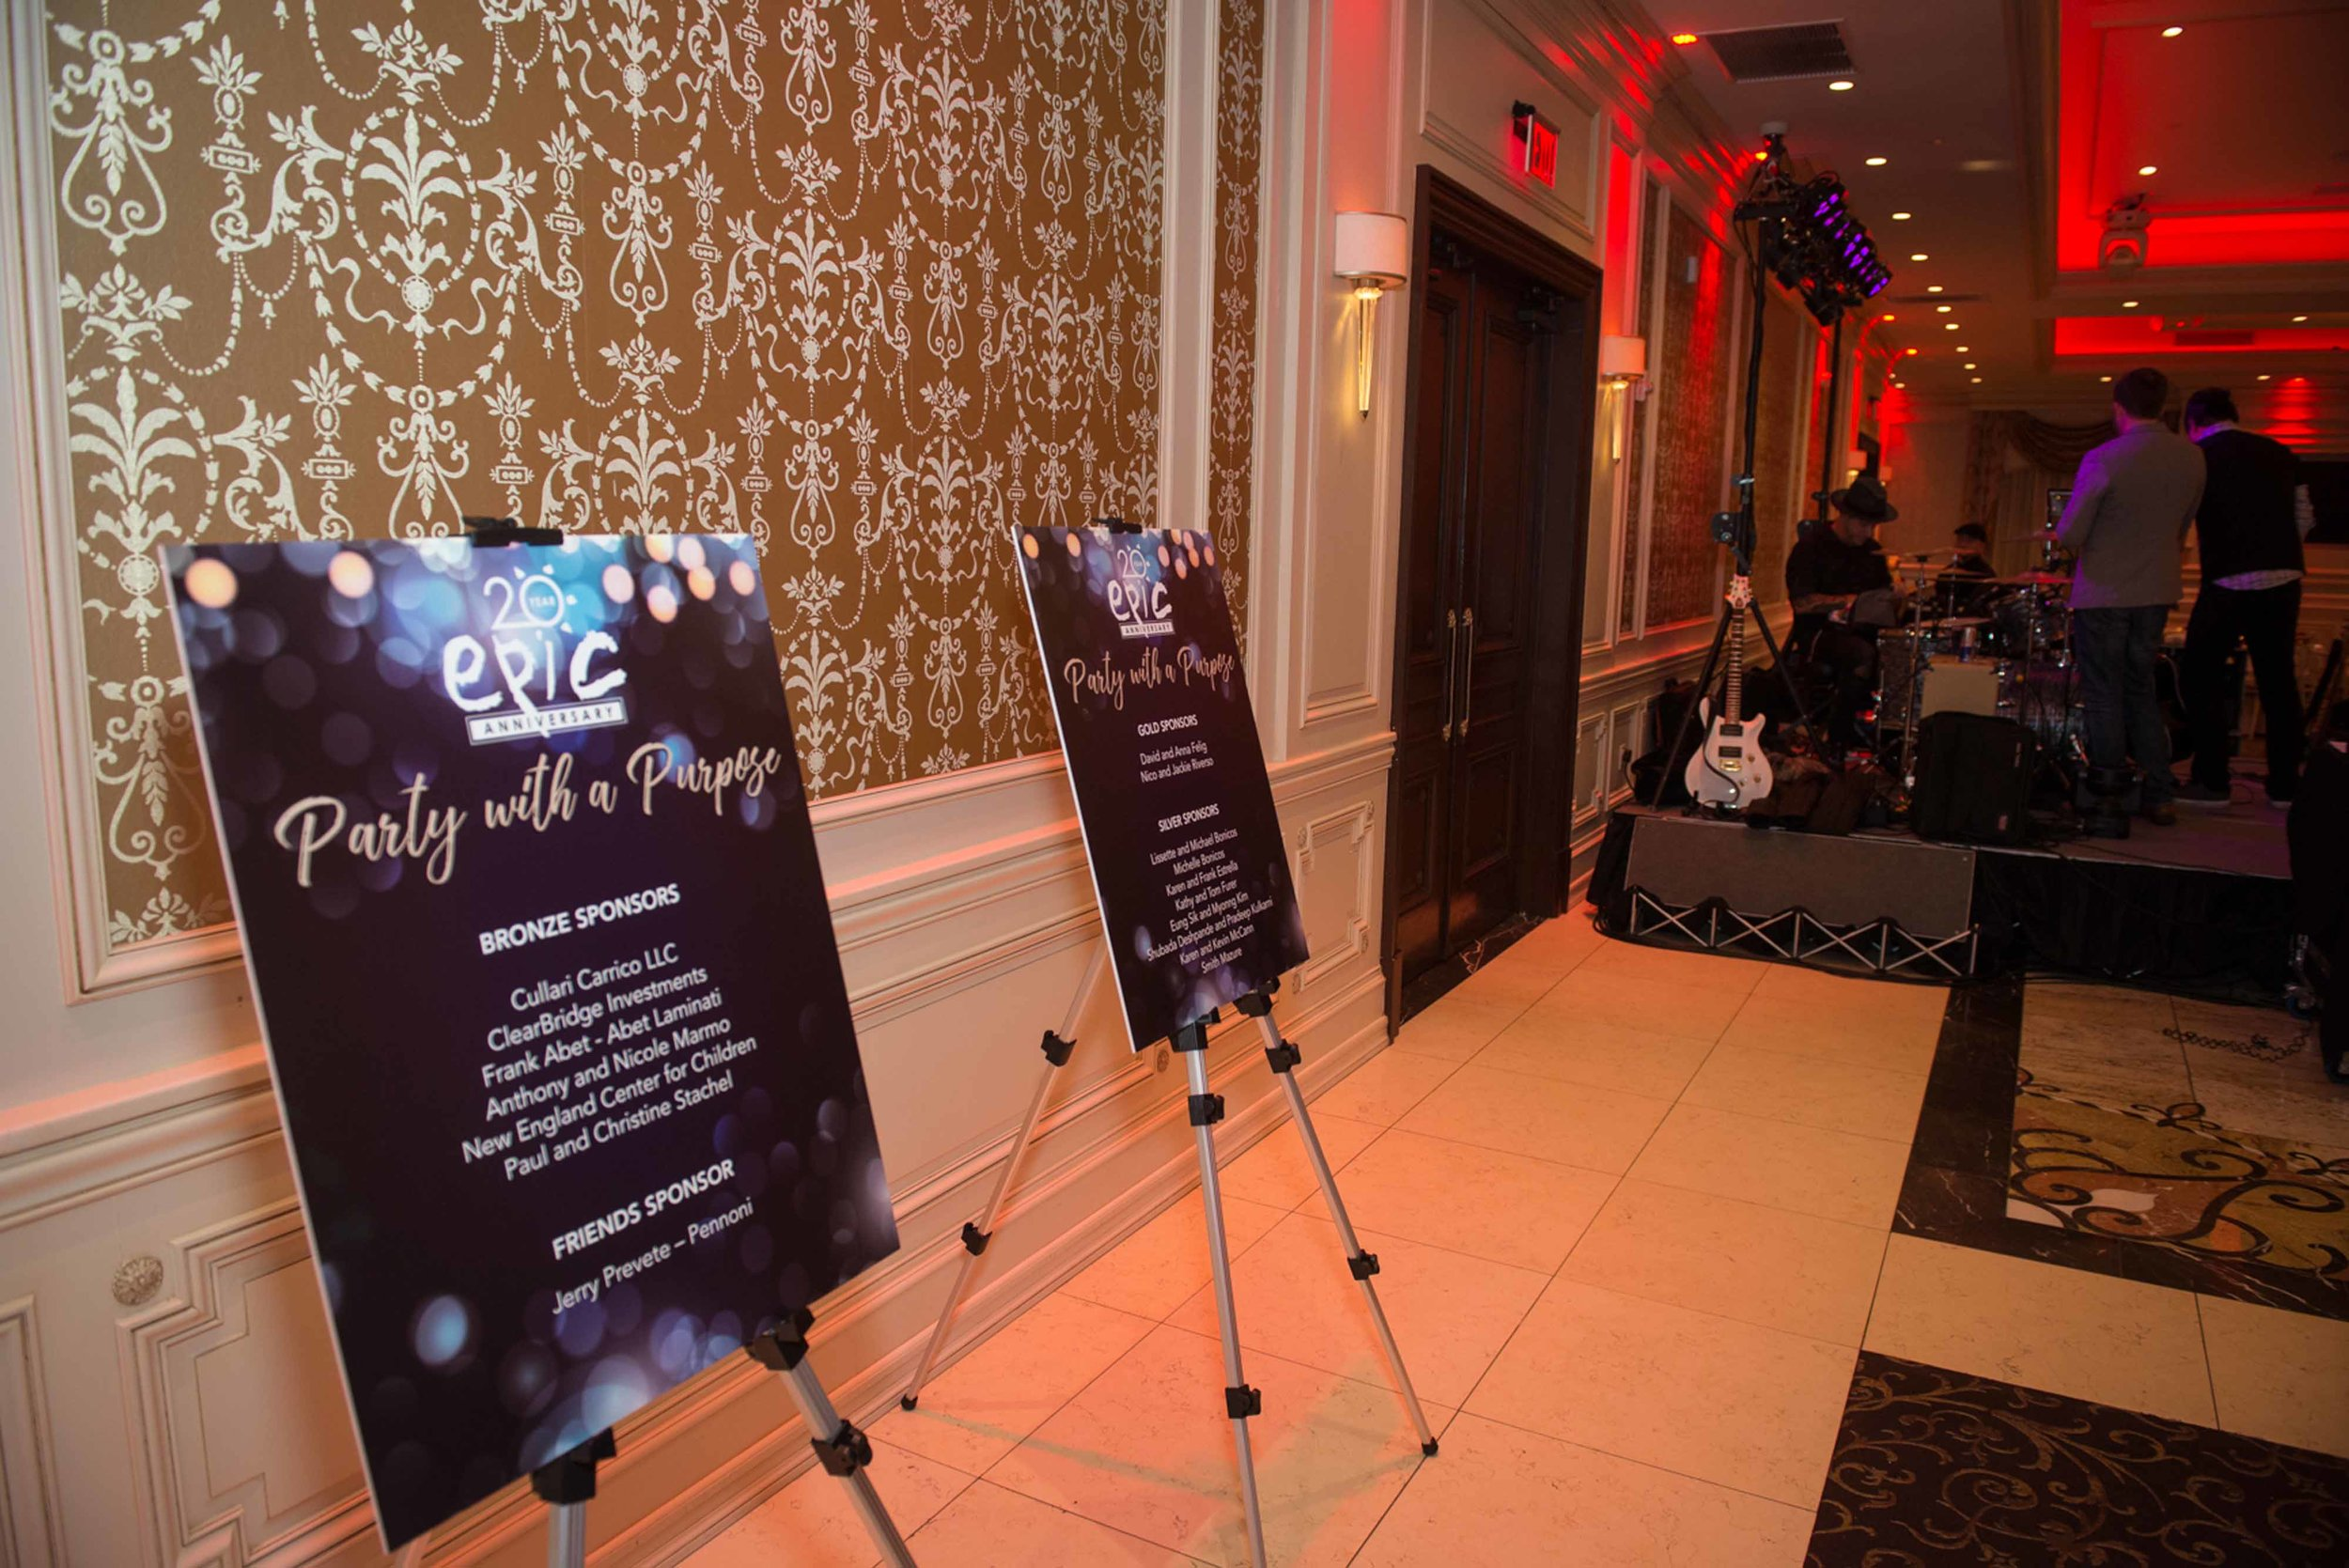 2017-11-10 The EPIC School - Party with a Purpose - Biagios on the Terrace - Paramus NJ-14.jpg